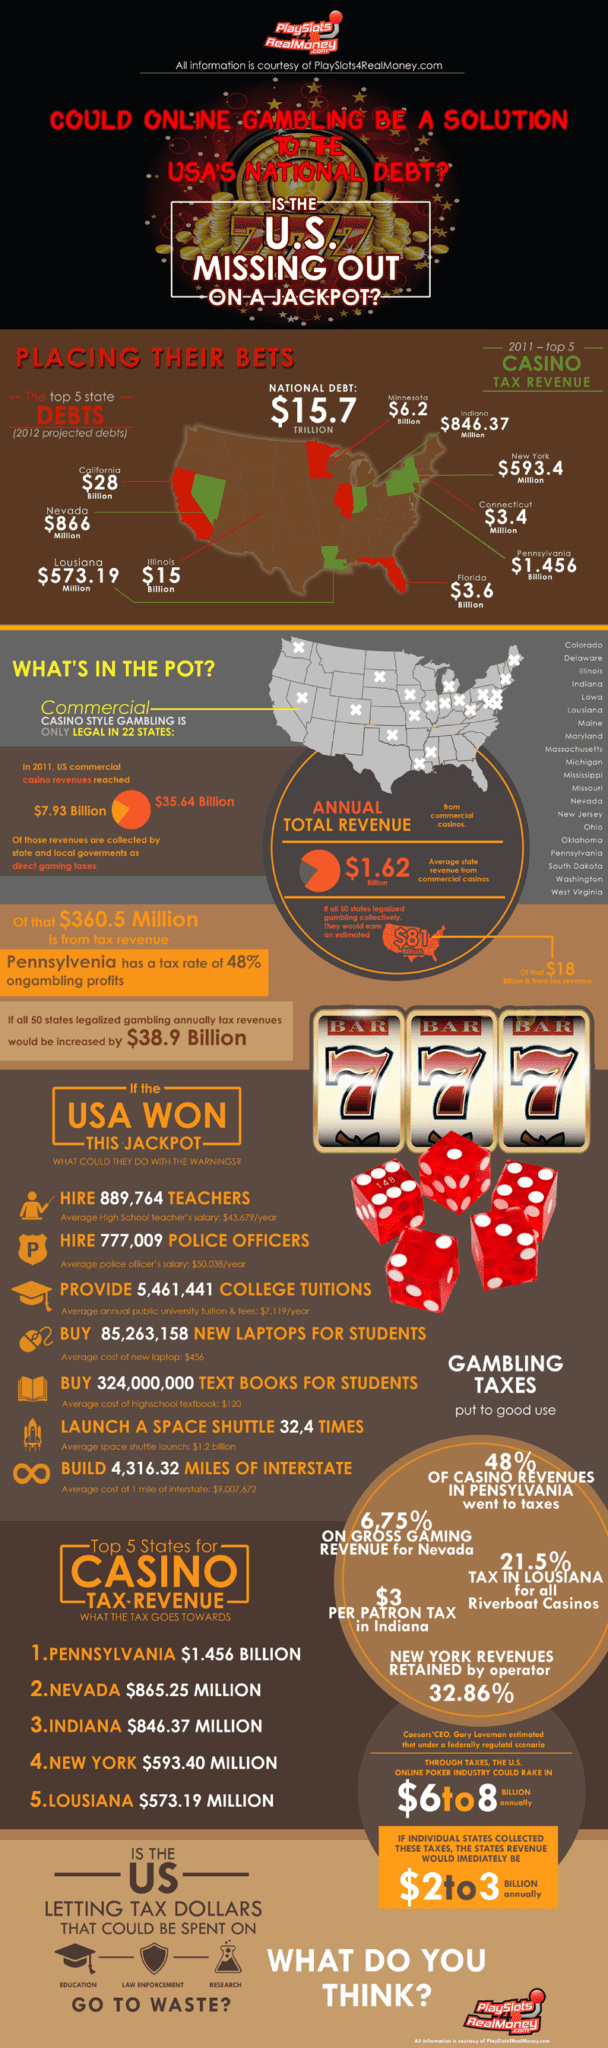 online casino usa game onlin